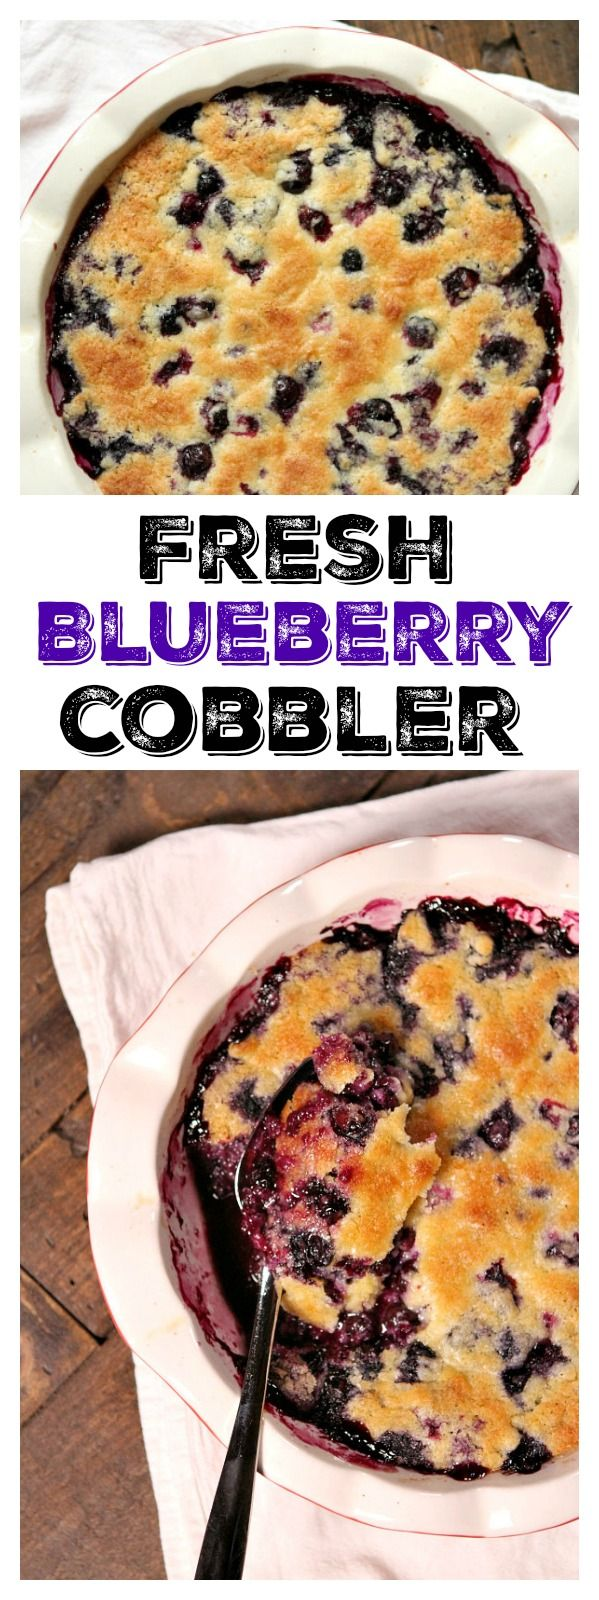 Easy Fresh Blueberry Cobbler recipe : the perfect summer dessert recipe.  This cobbler is amazing served warm with a scoop of vanilla ice cream.  You'll want to guzzle the blueberry syrup left in the pan!  :: recipe from RecipeGirl.com